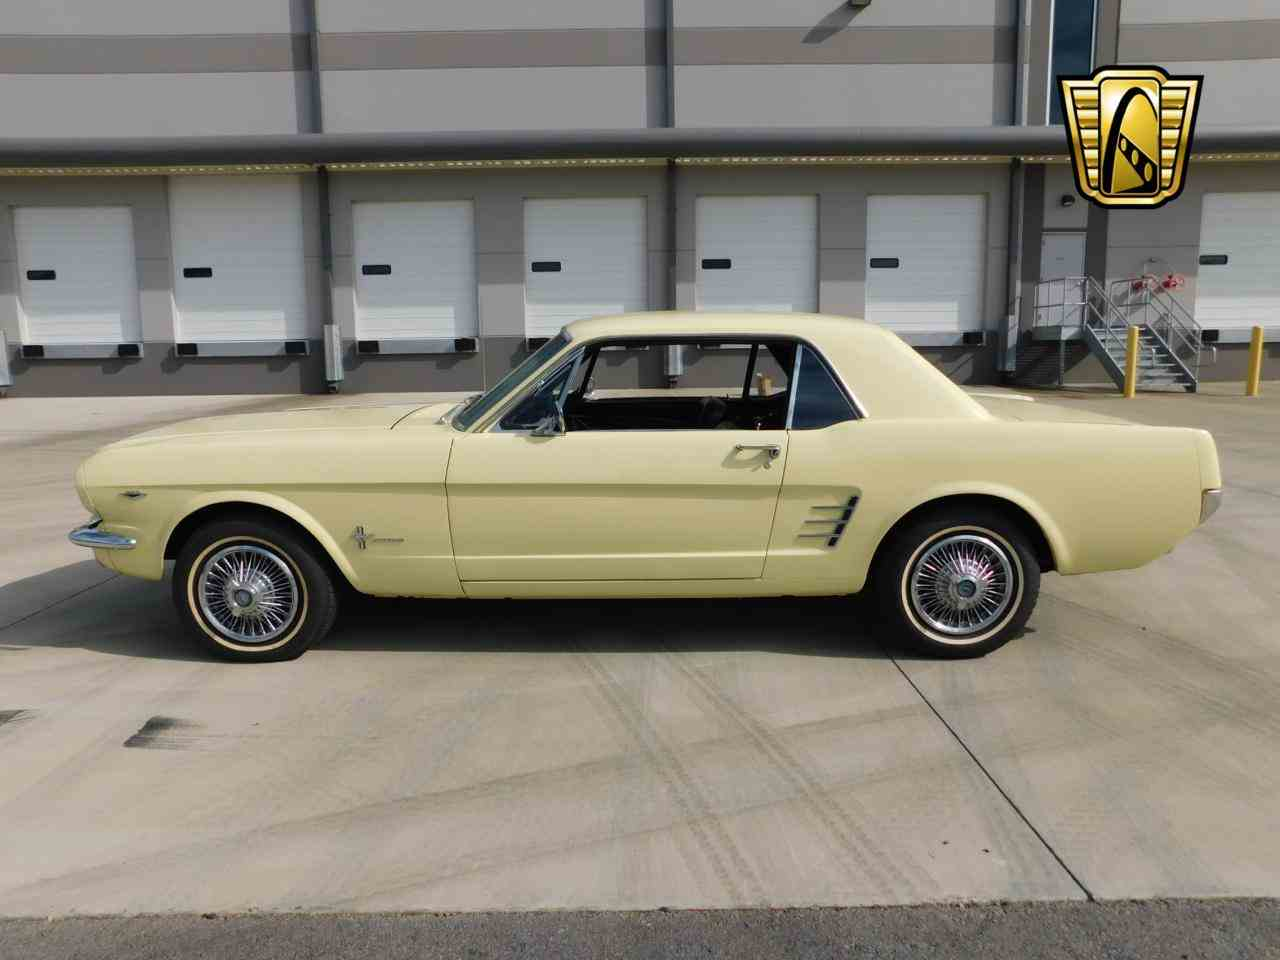 Large Picture of Classic '66 Ford Mustang located in Georgia Offered by Gateway Classic Cars - Atlanta - MBRW